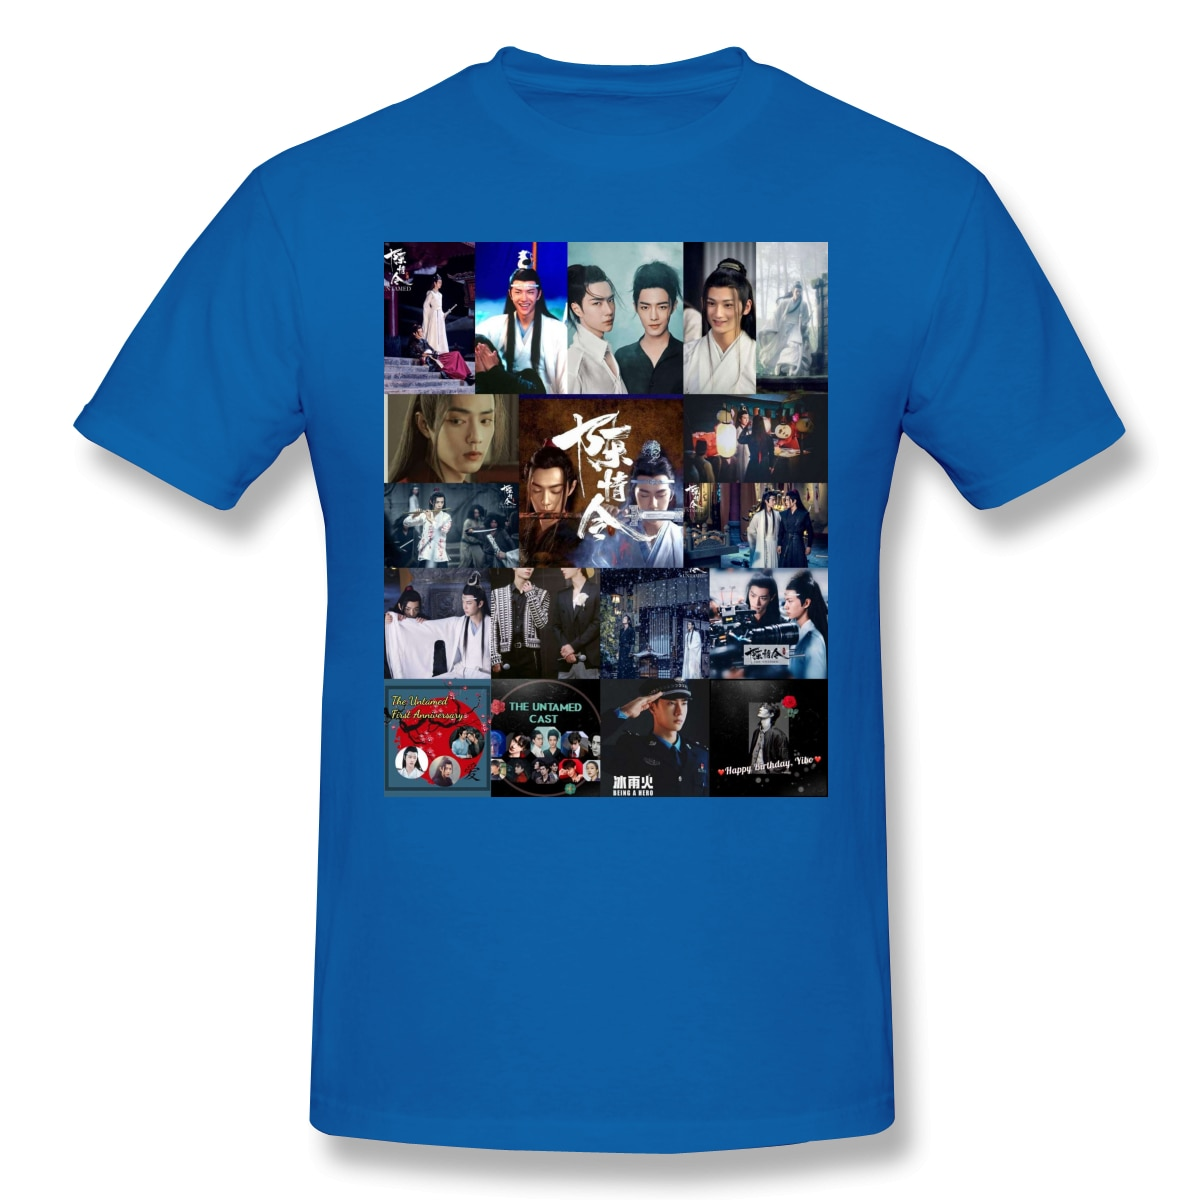 All My The Untamed blogs Wiki BL Drama Amino Men's Basic Short Sleeve T-Shirt Funny The Untamed Tees Eur Size